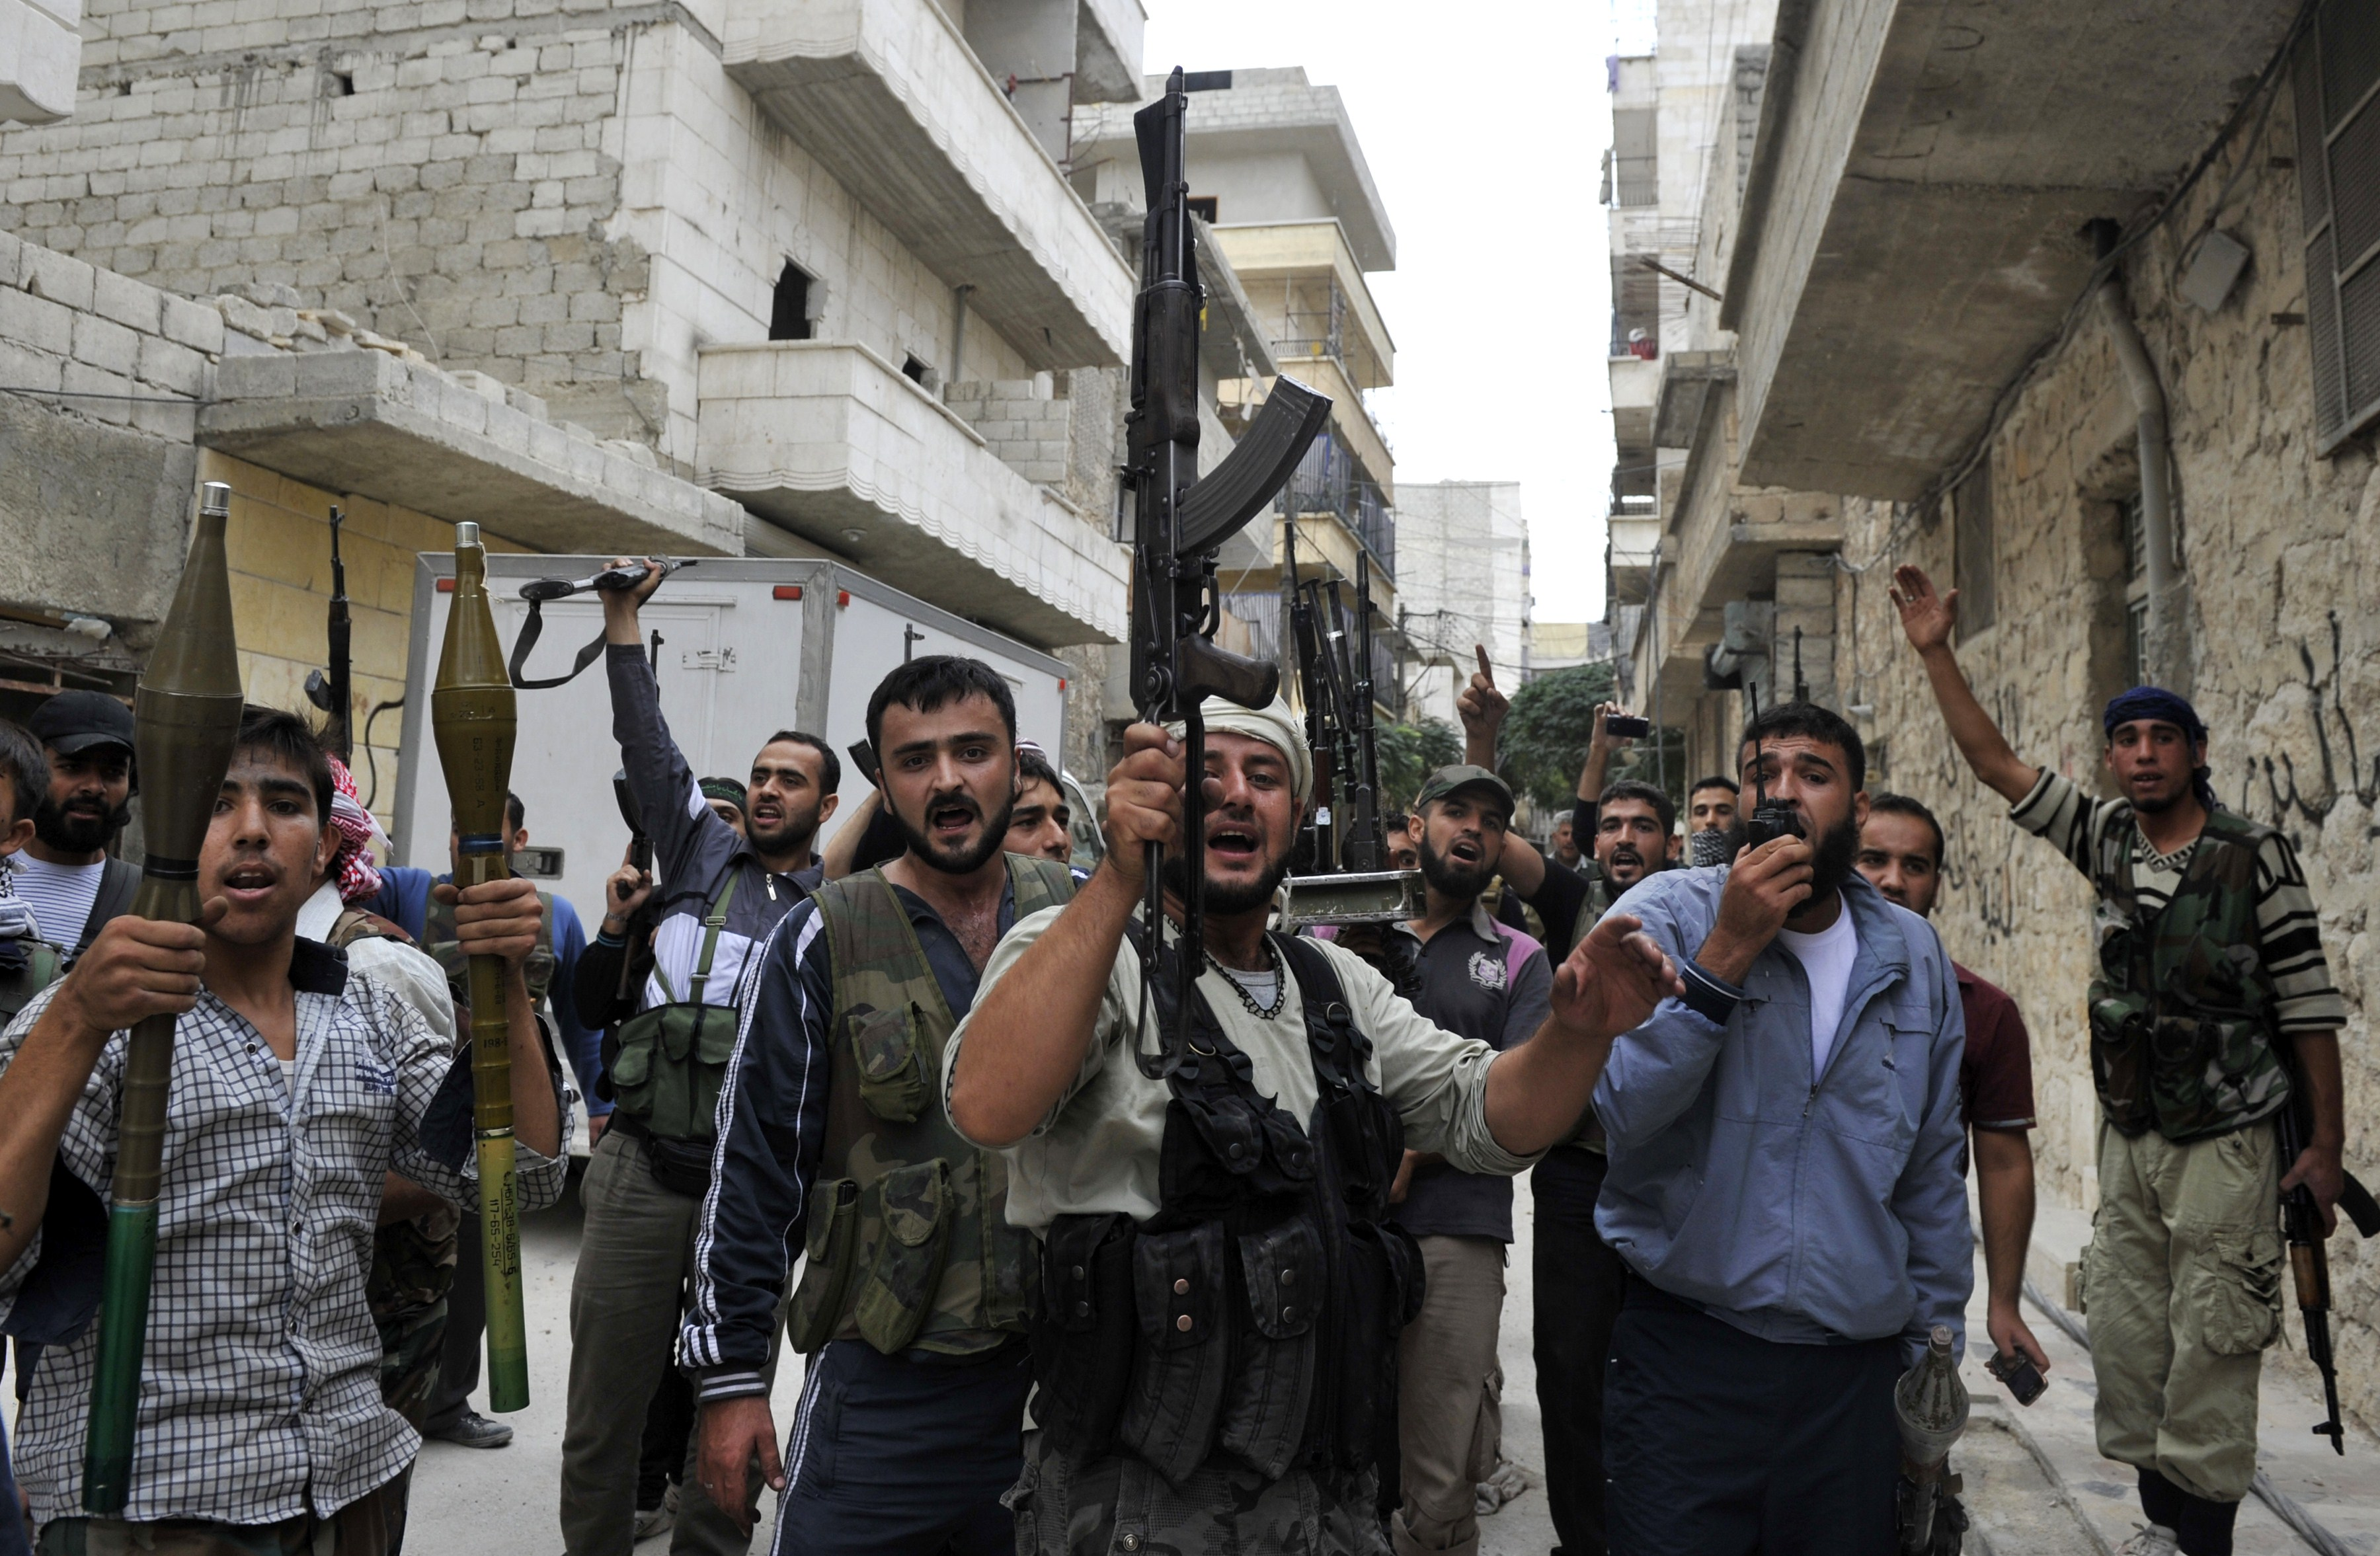 TO GO WITH AFP YEAR2012 BY HERVE BAR (FILES)- An October 11, 2012 file photo shows Syrian rebel fighters holding up their guns as they shout slogans in a street in the northern city of Aleppo following shelling by government forces. Syria's uprising has shifted from popular street protests against President Bashar al-Assad to a full-fledged war, increasingly influenced by armed Islamists, in a far cry from the idealism of the Arab Spring. AFP PHOTO/TAUSEEF MUSTAFA  YEAR2012-SYRIA-CONFLICT